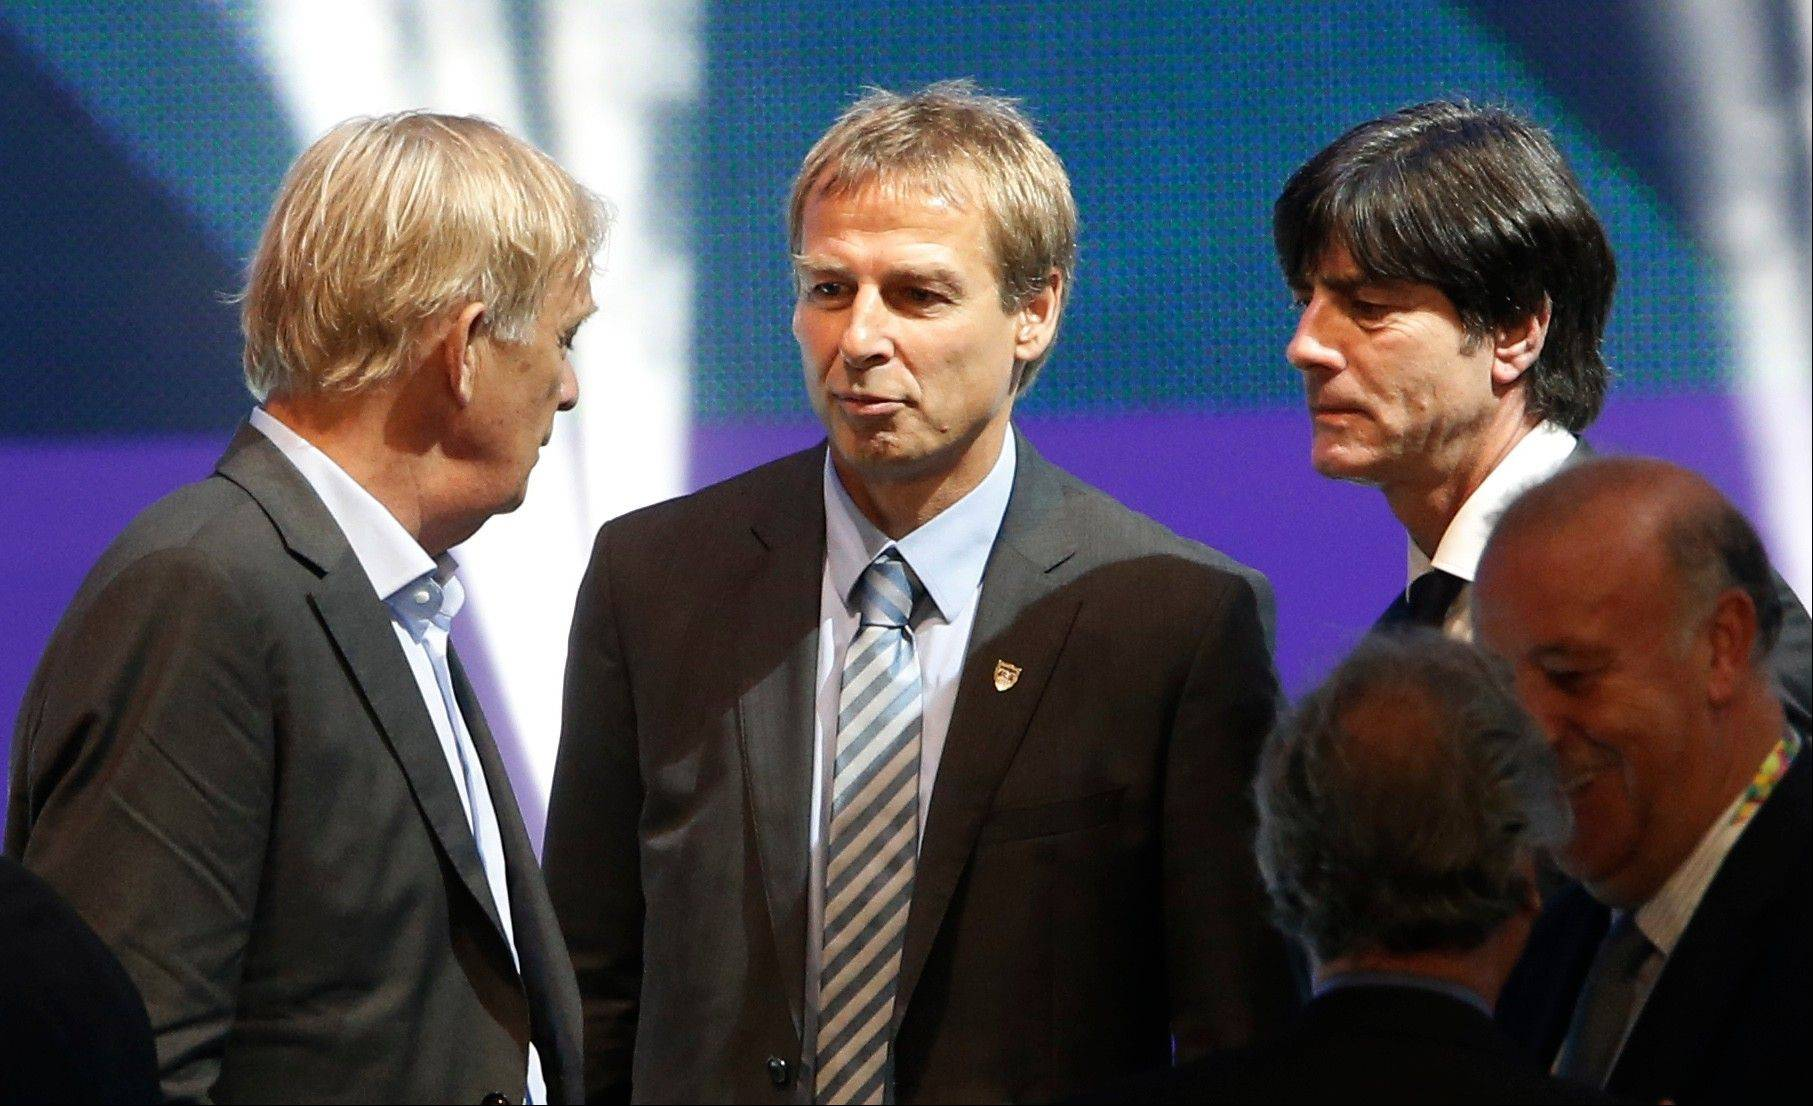 From left: Cameroon head coach Volker Finke of Germany, United States head coach Juergen Klinsmann of Germany, and Germany head coach Joachim Loew chat after the draw ceremony for the 2014 soccer World Cup.